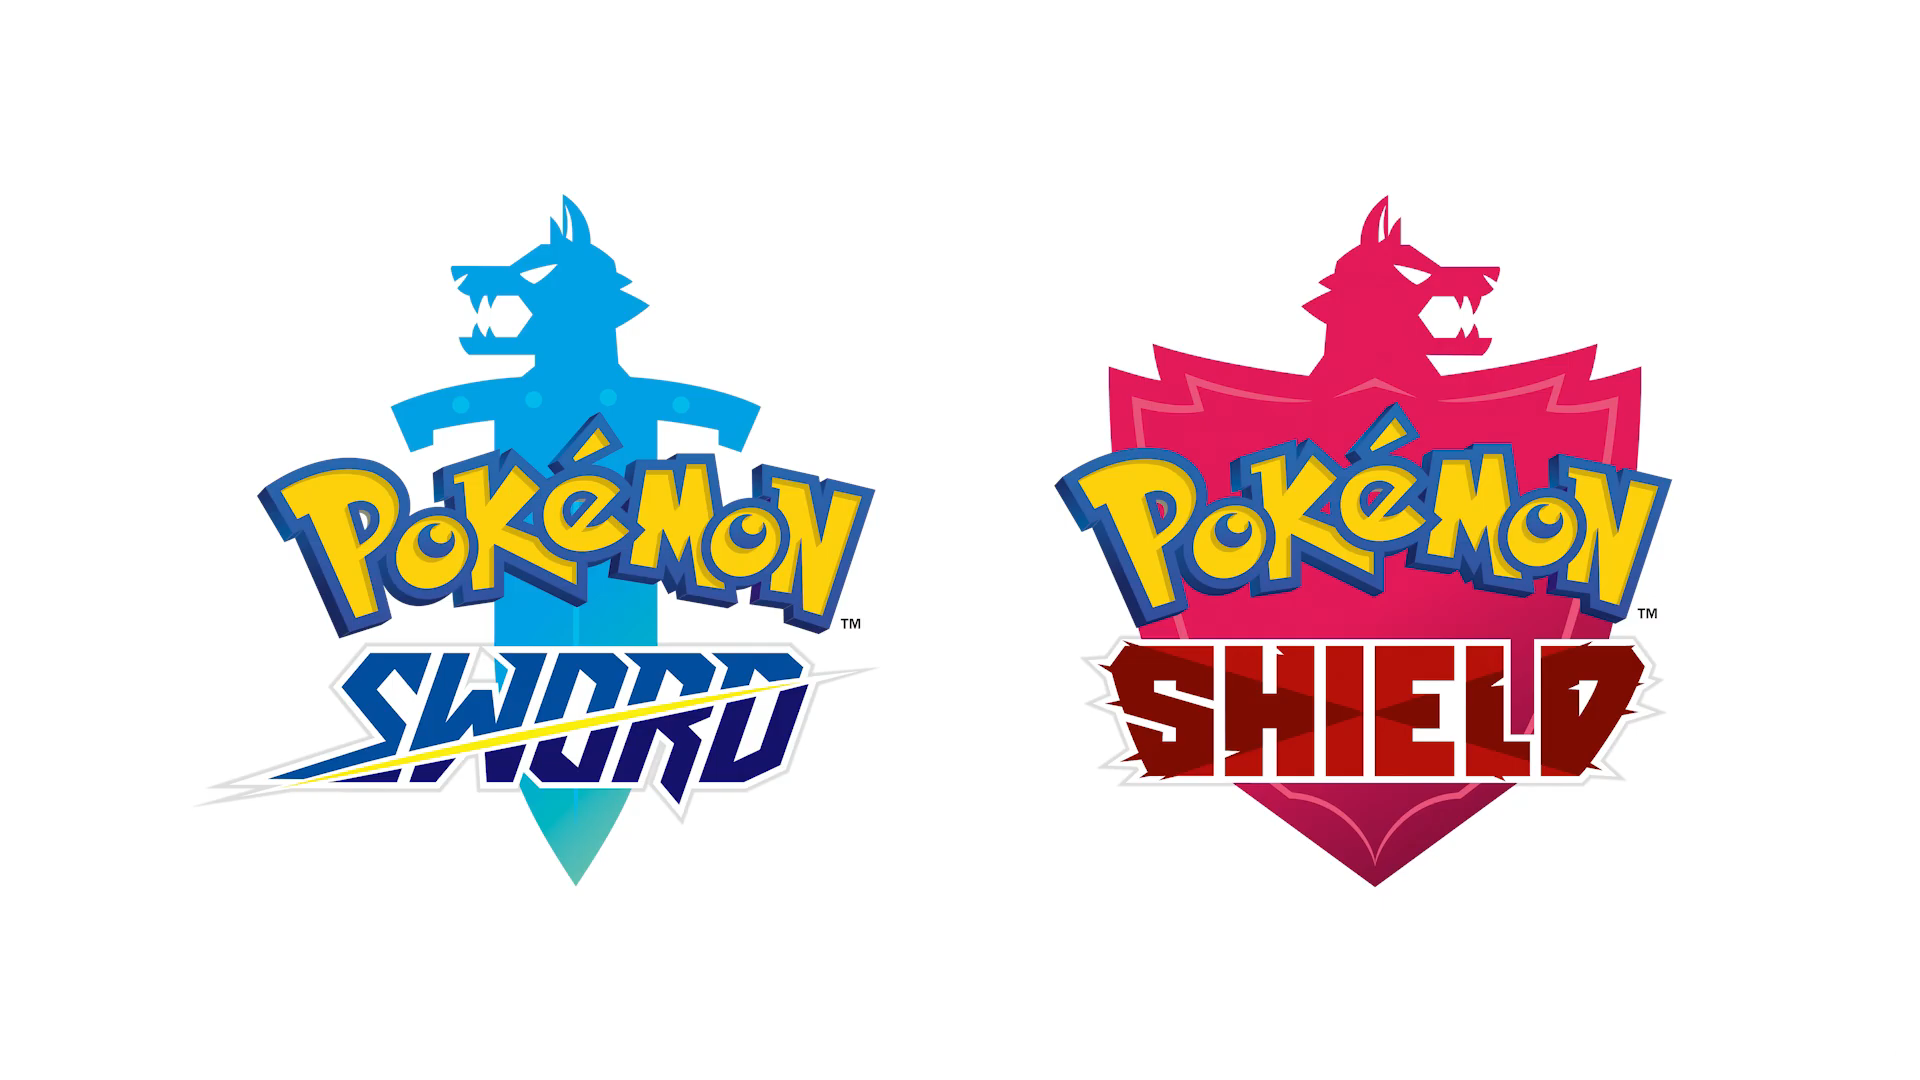 Download Pokémon Sword and Pokémon Shield for Android APK